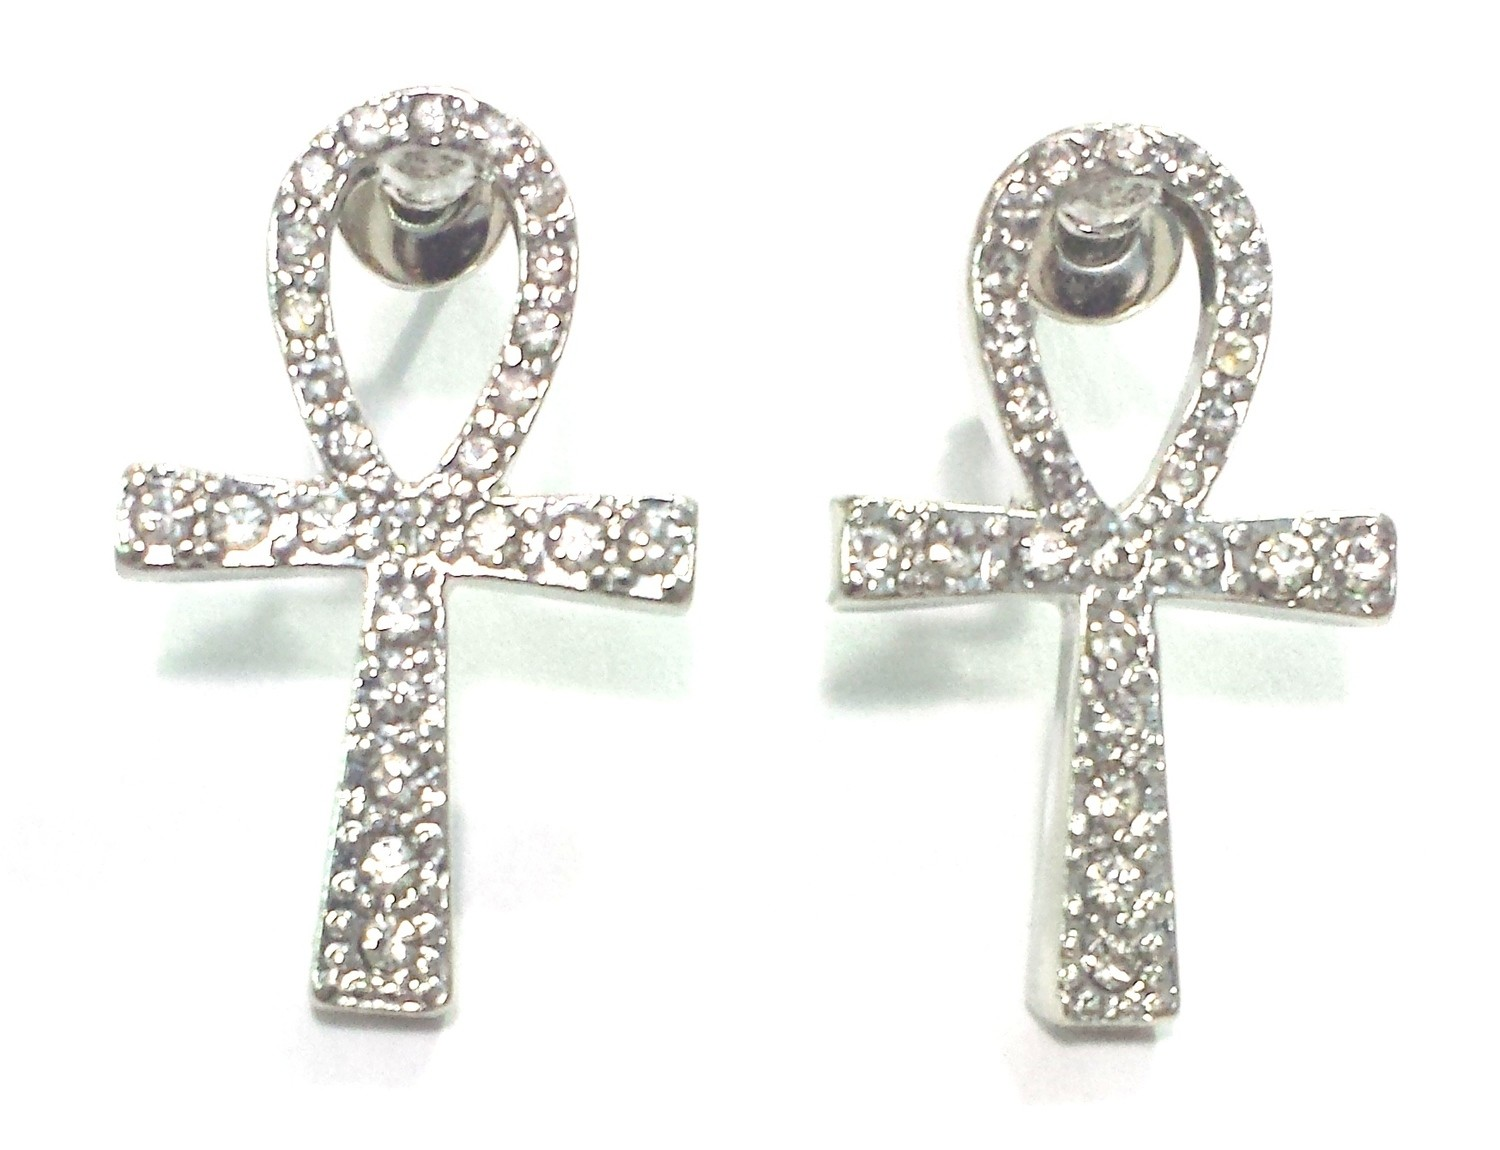 Ankh Stud Earrings (Silver Color)